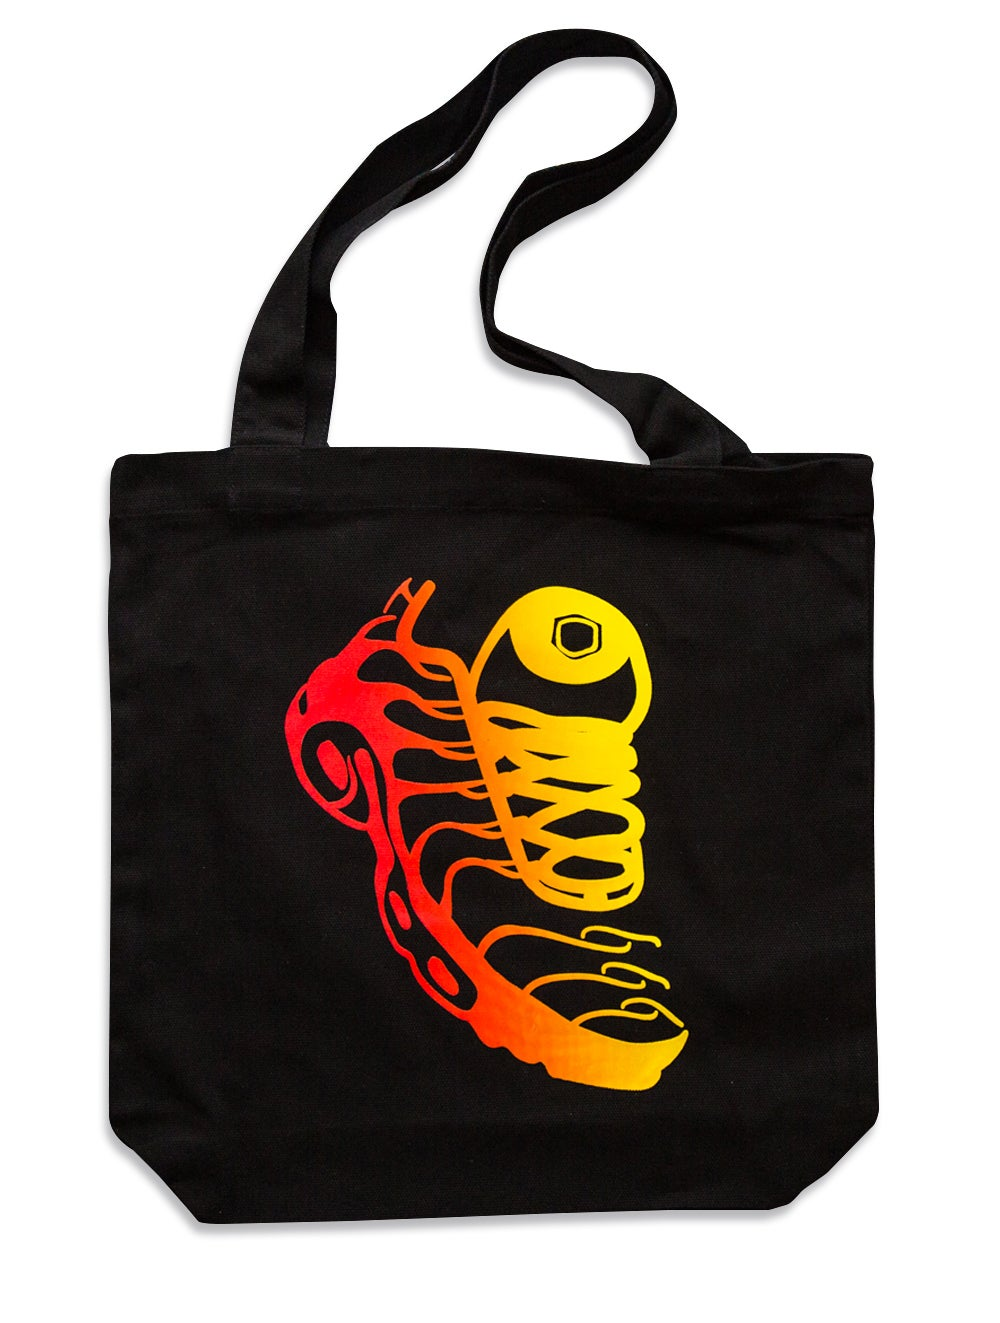 Image of Redhot Bootleg TN Tote